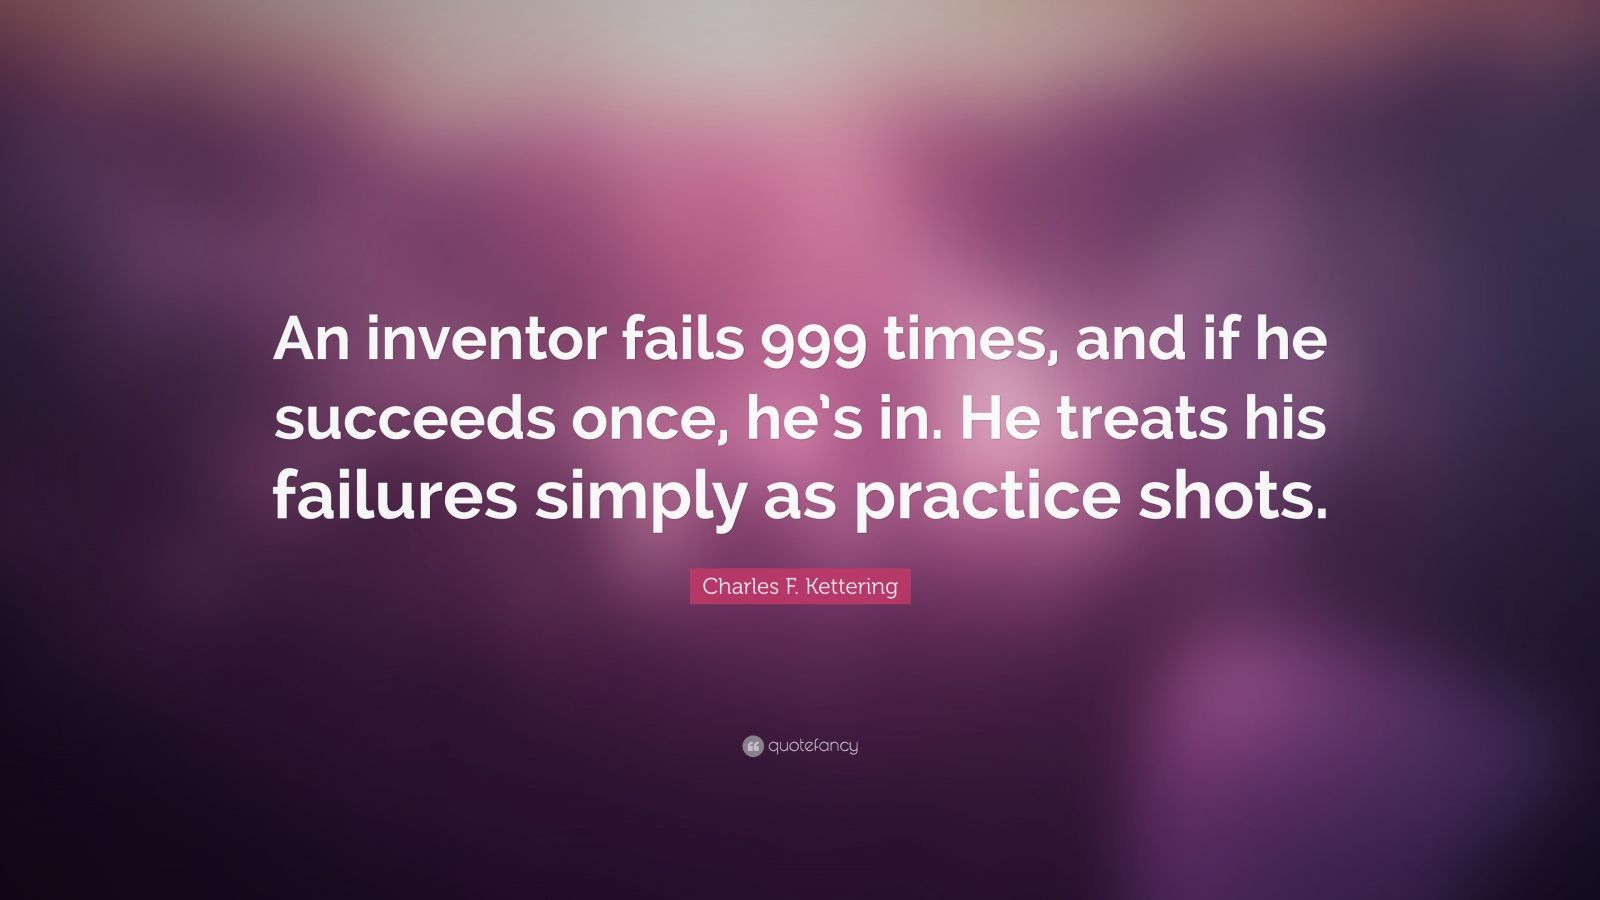 """Charles F. Kettering Quote: """"An inventor fails 999 times, and if he succeeds once, he's in. He treats his failures simply as practice shots."""""""